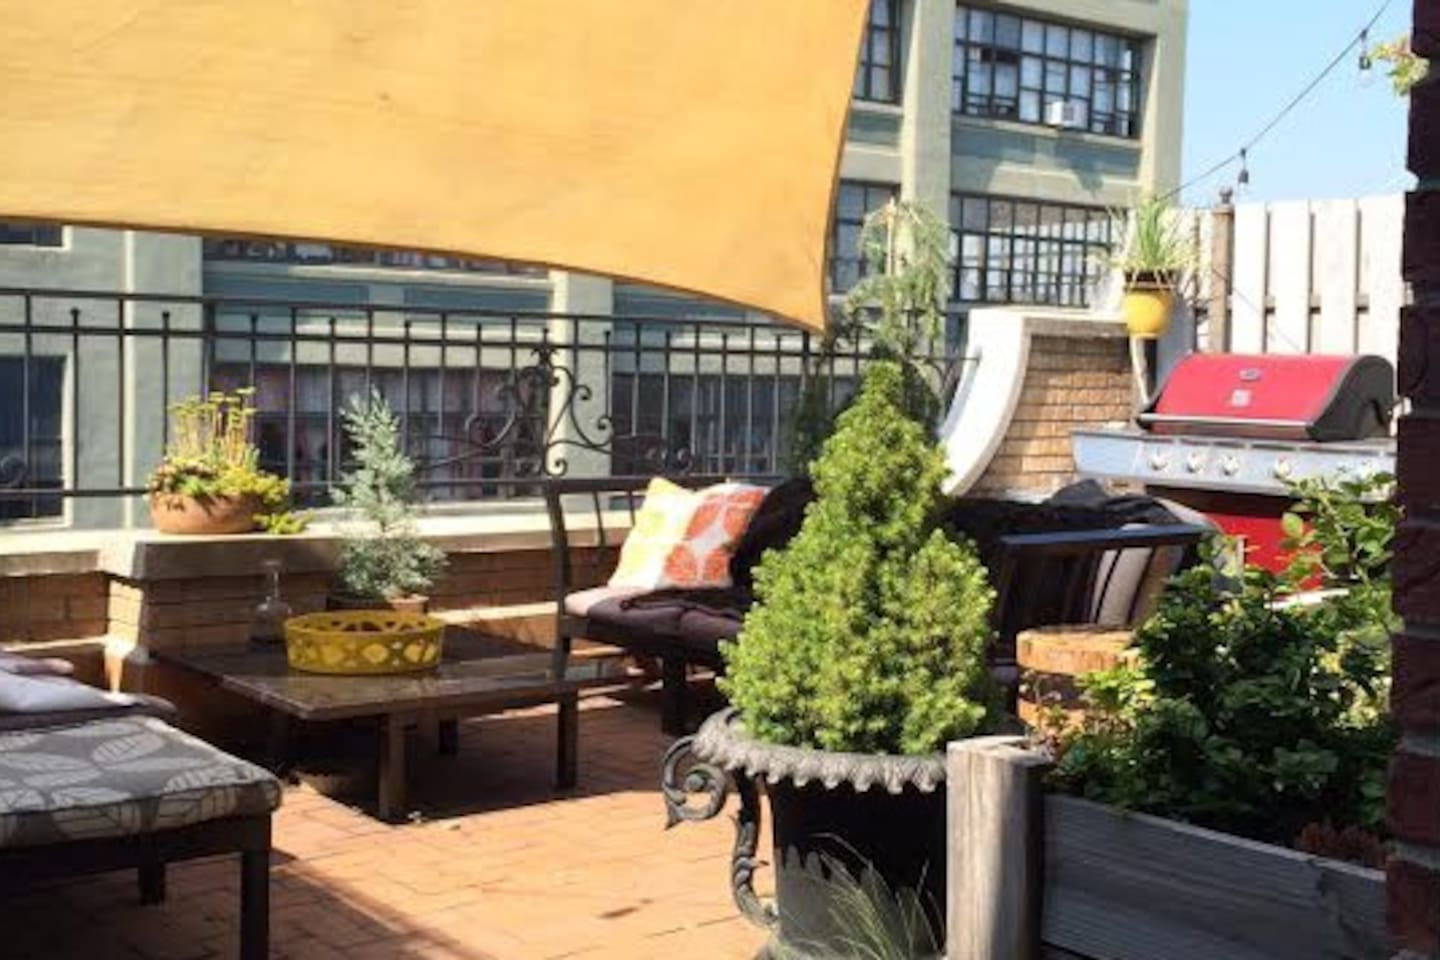 Our private patio with great Manhattan views, and a projector for movies - screen 14 ft wide - seats 10 or more at night